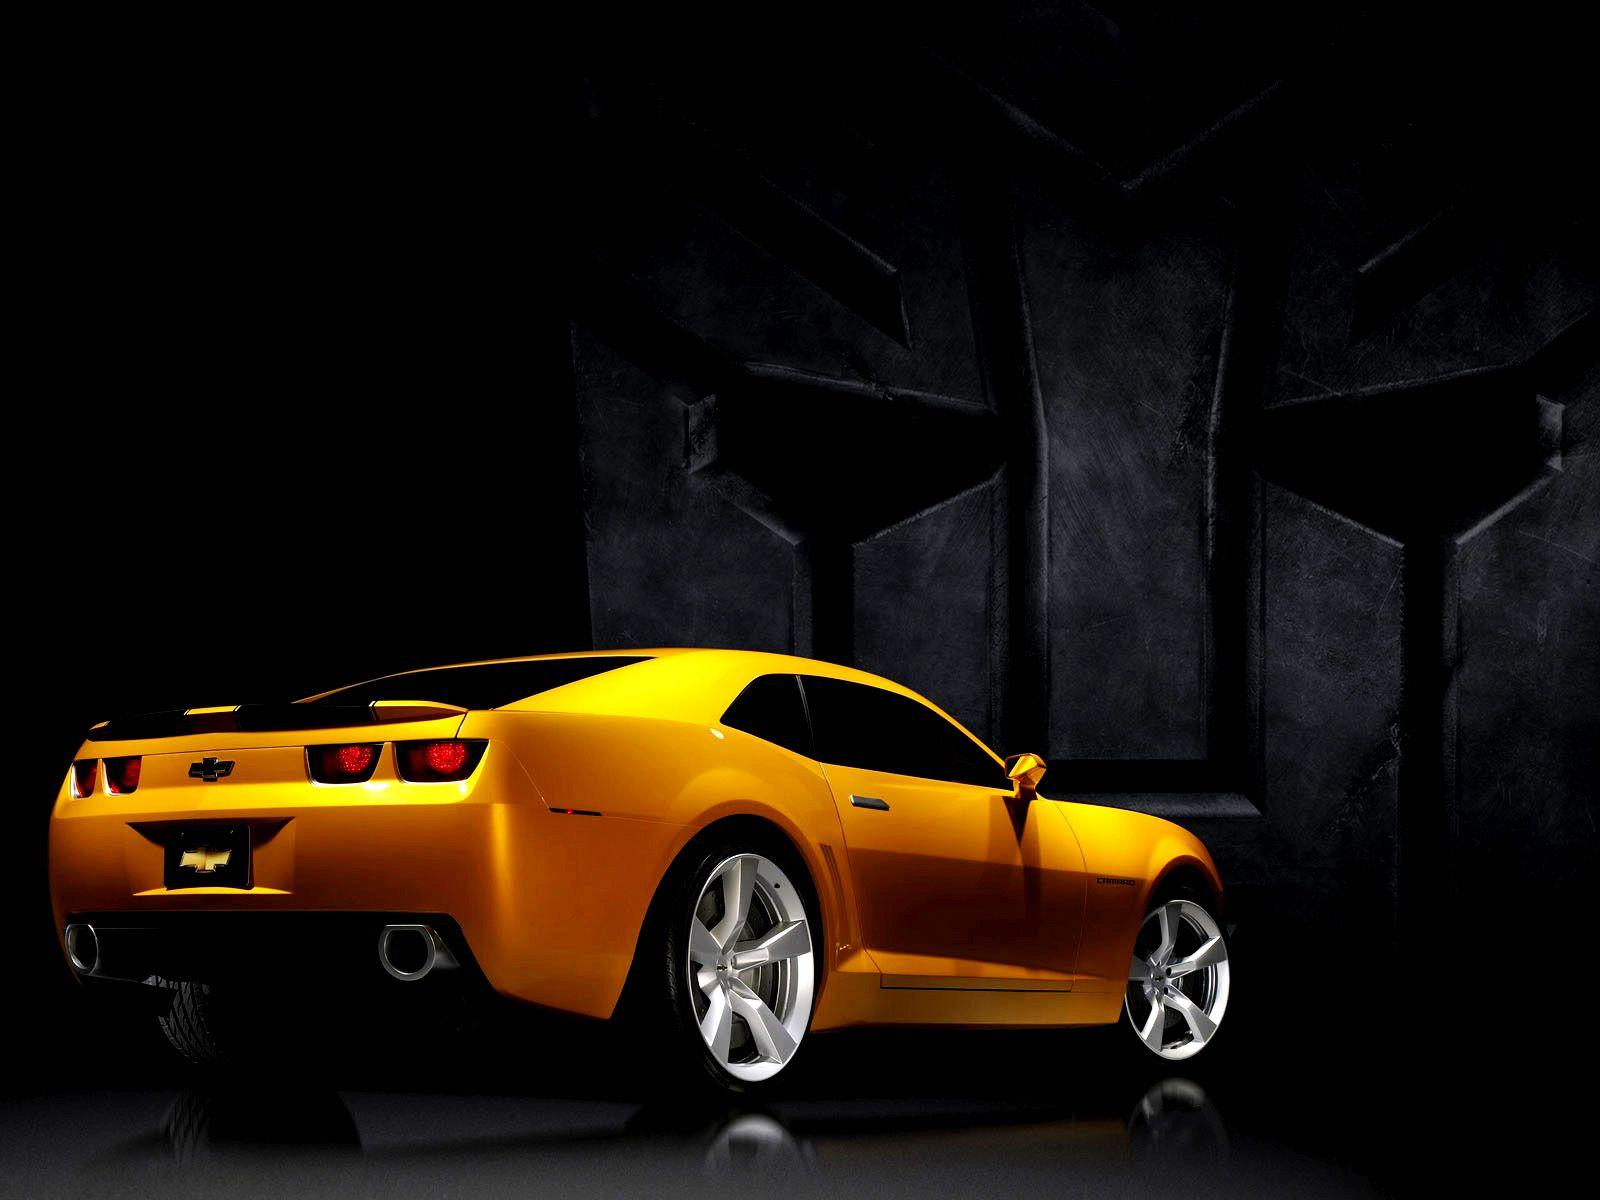 bumblebee 2017 wallpapers hd wallpaper cave